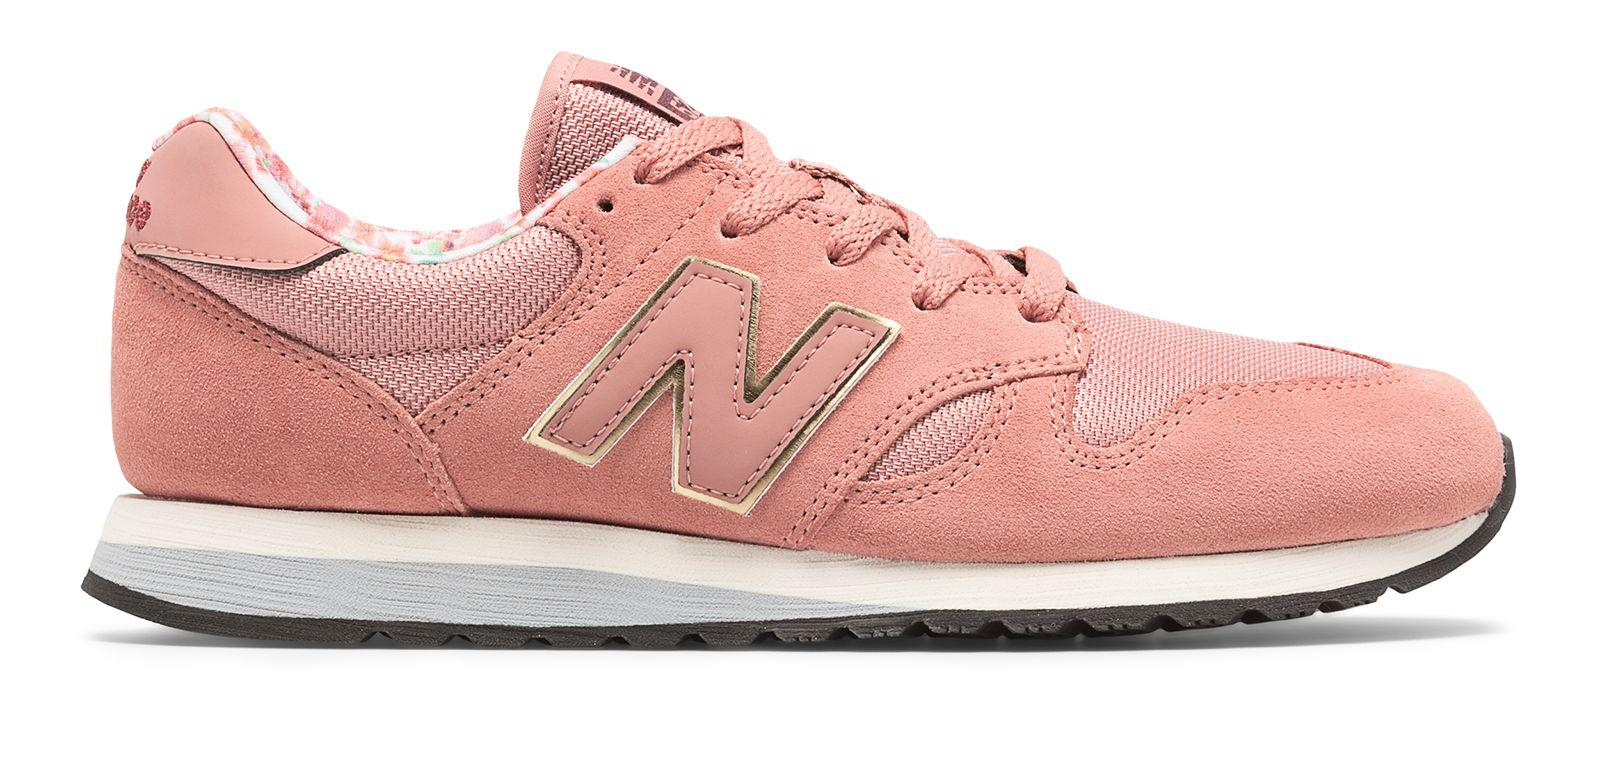 New Balance Suede 520 70s Running in